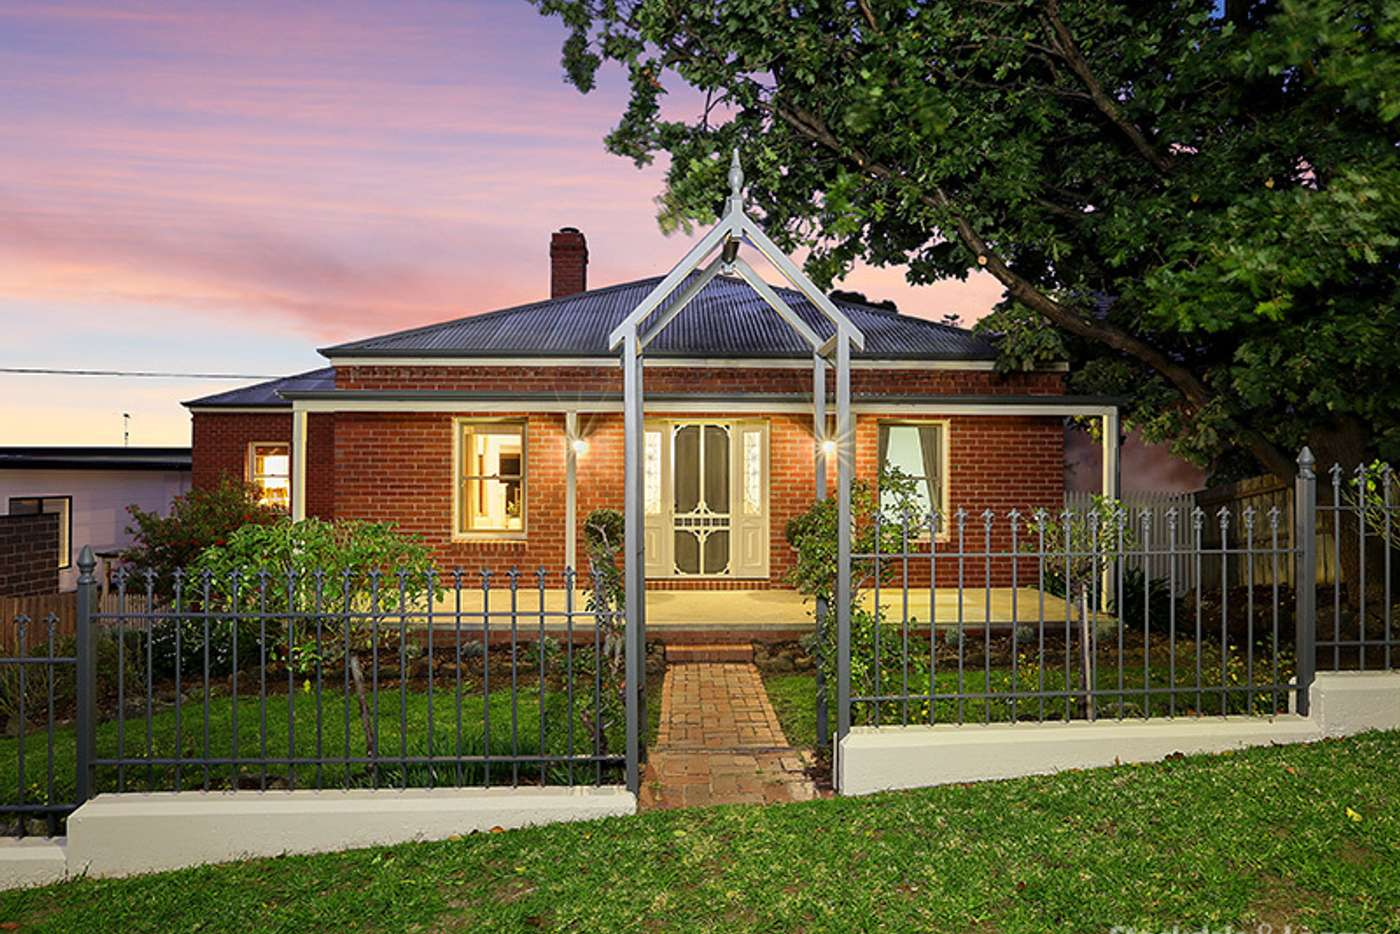 Main view of Homely house listing, 3 Mawarra Court, Highton VIC 3216